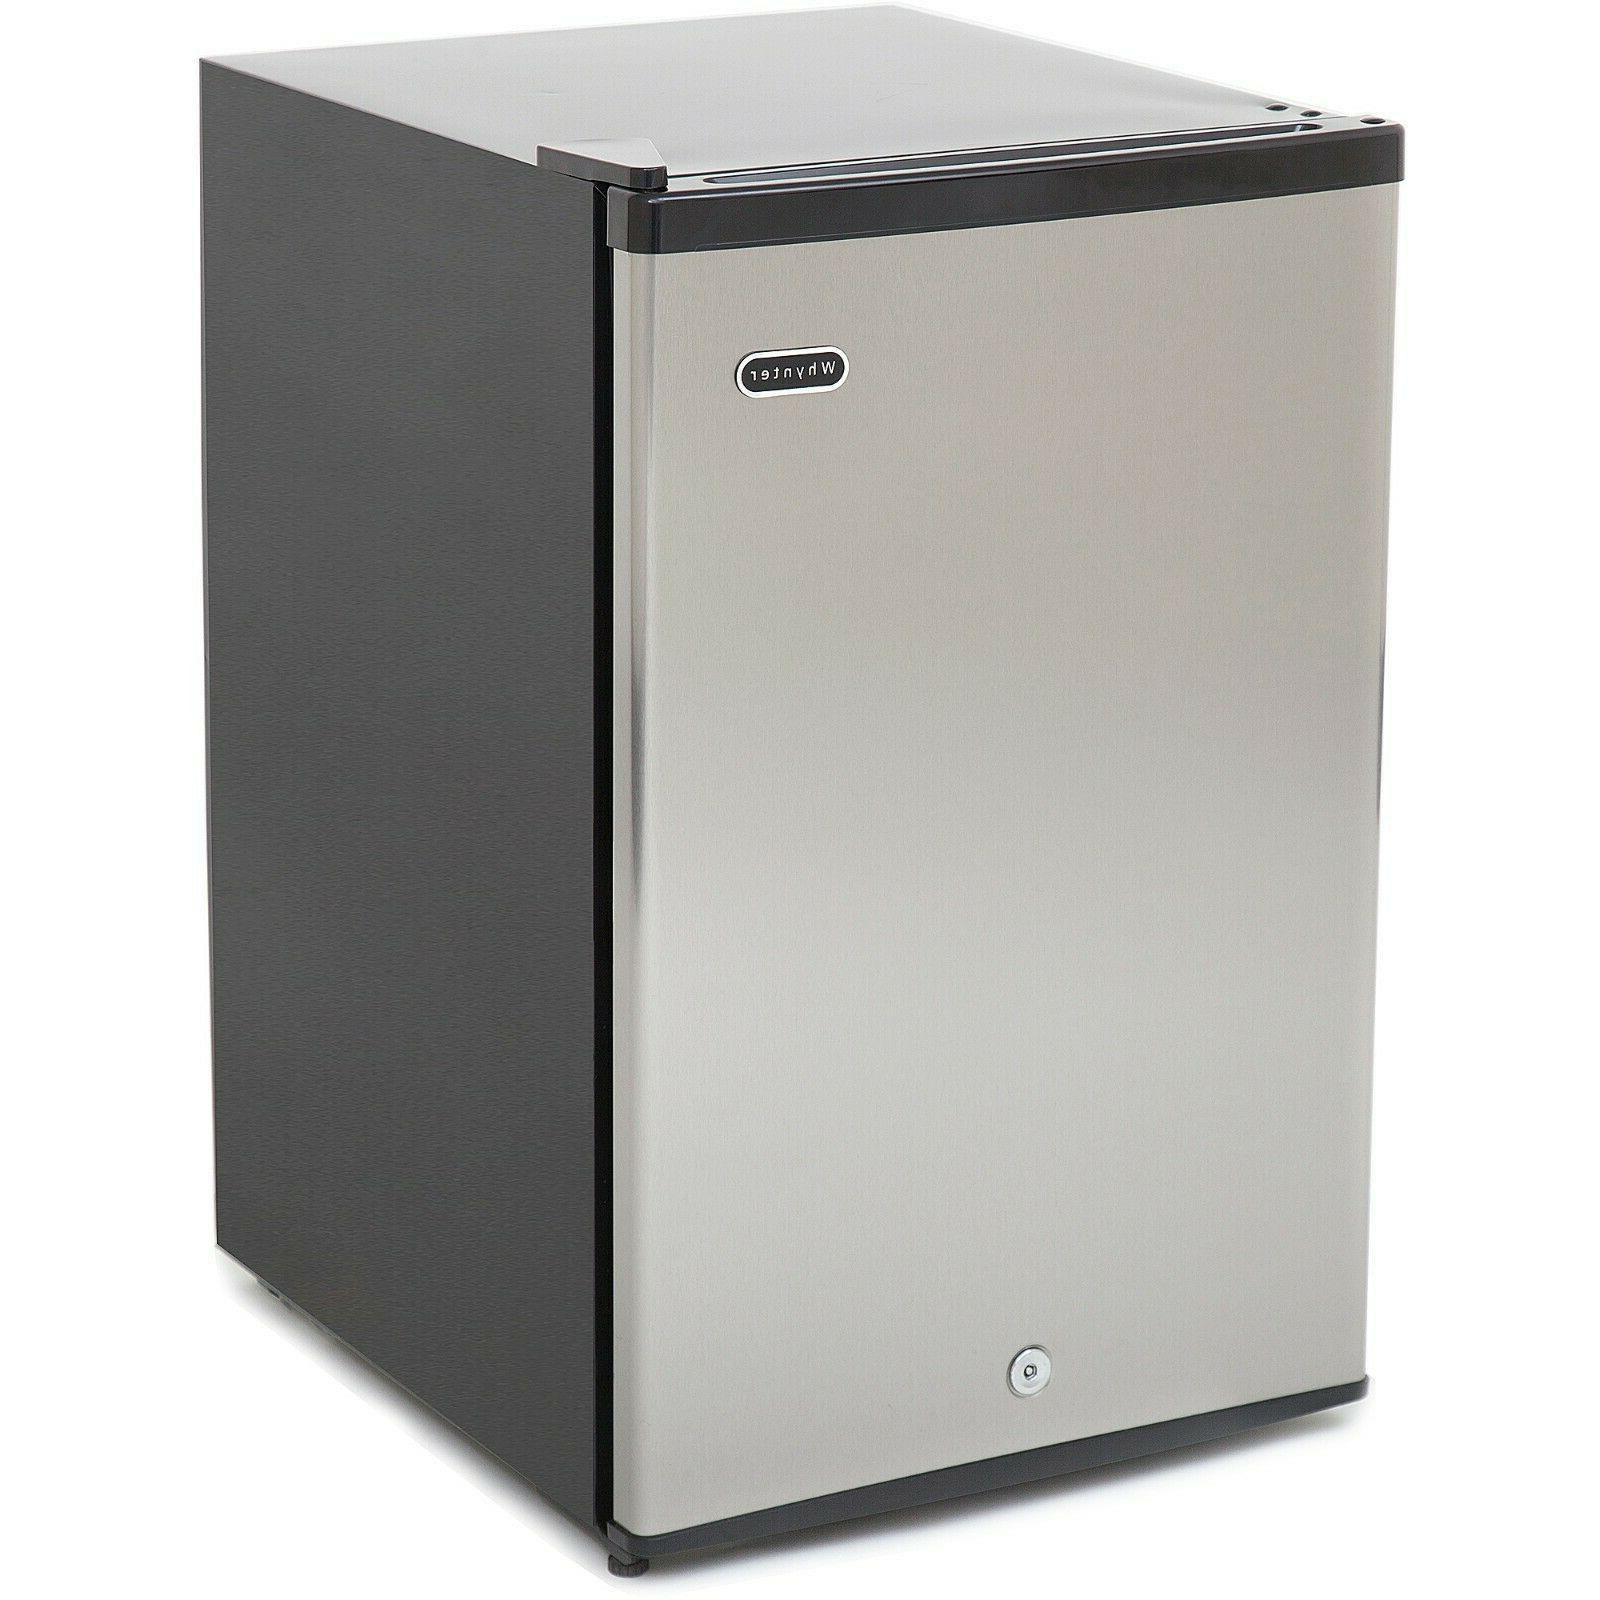 cuf-210ss energy star upright freezer, 2.1 cubic feet